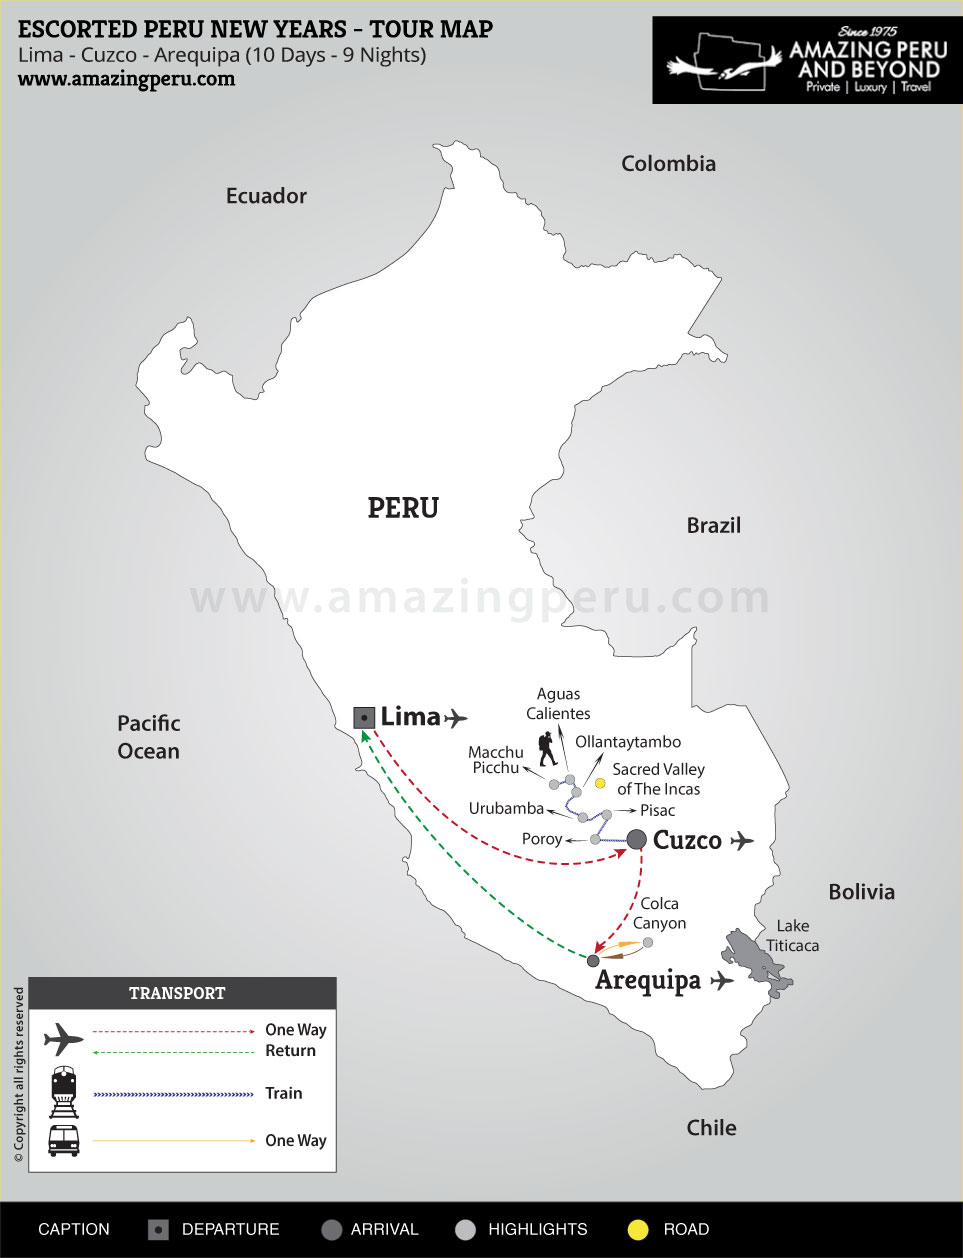 2020-21 Escorted Peru New Years 2 - 10 days / 9 nights.